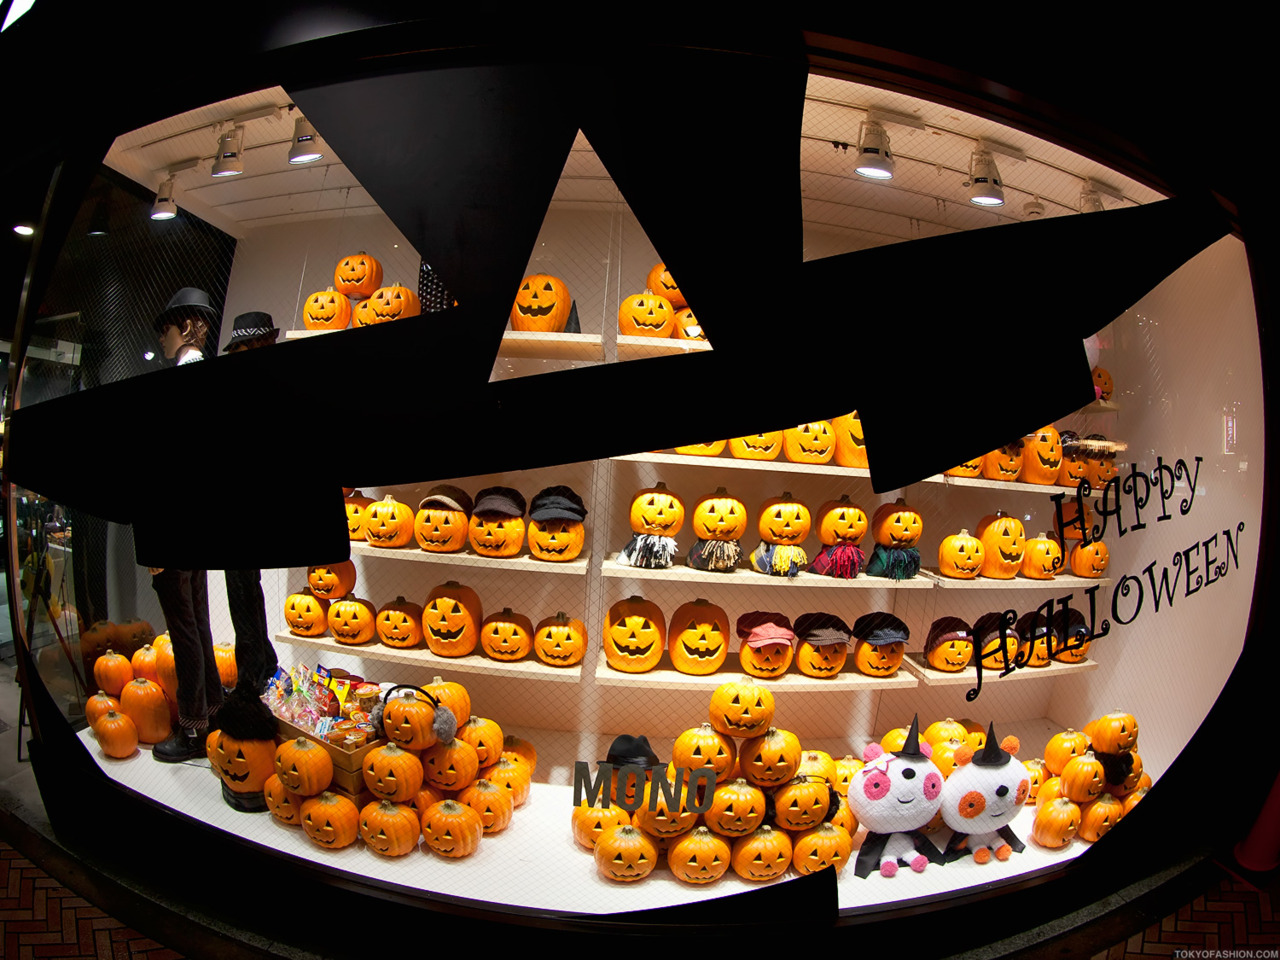 In Japan, a Halloween window display is decorated with two mannequins and lots of happy pumpkins.